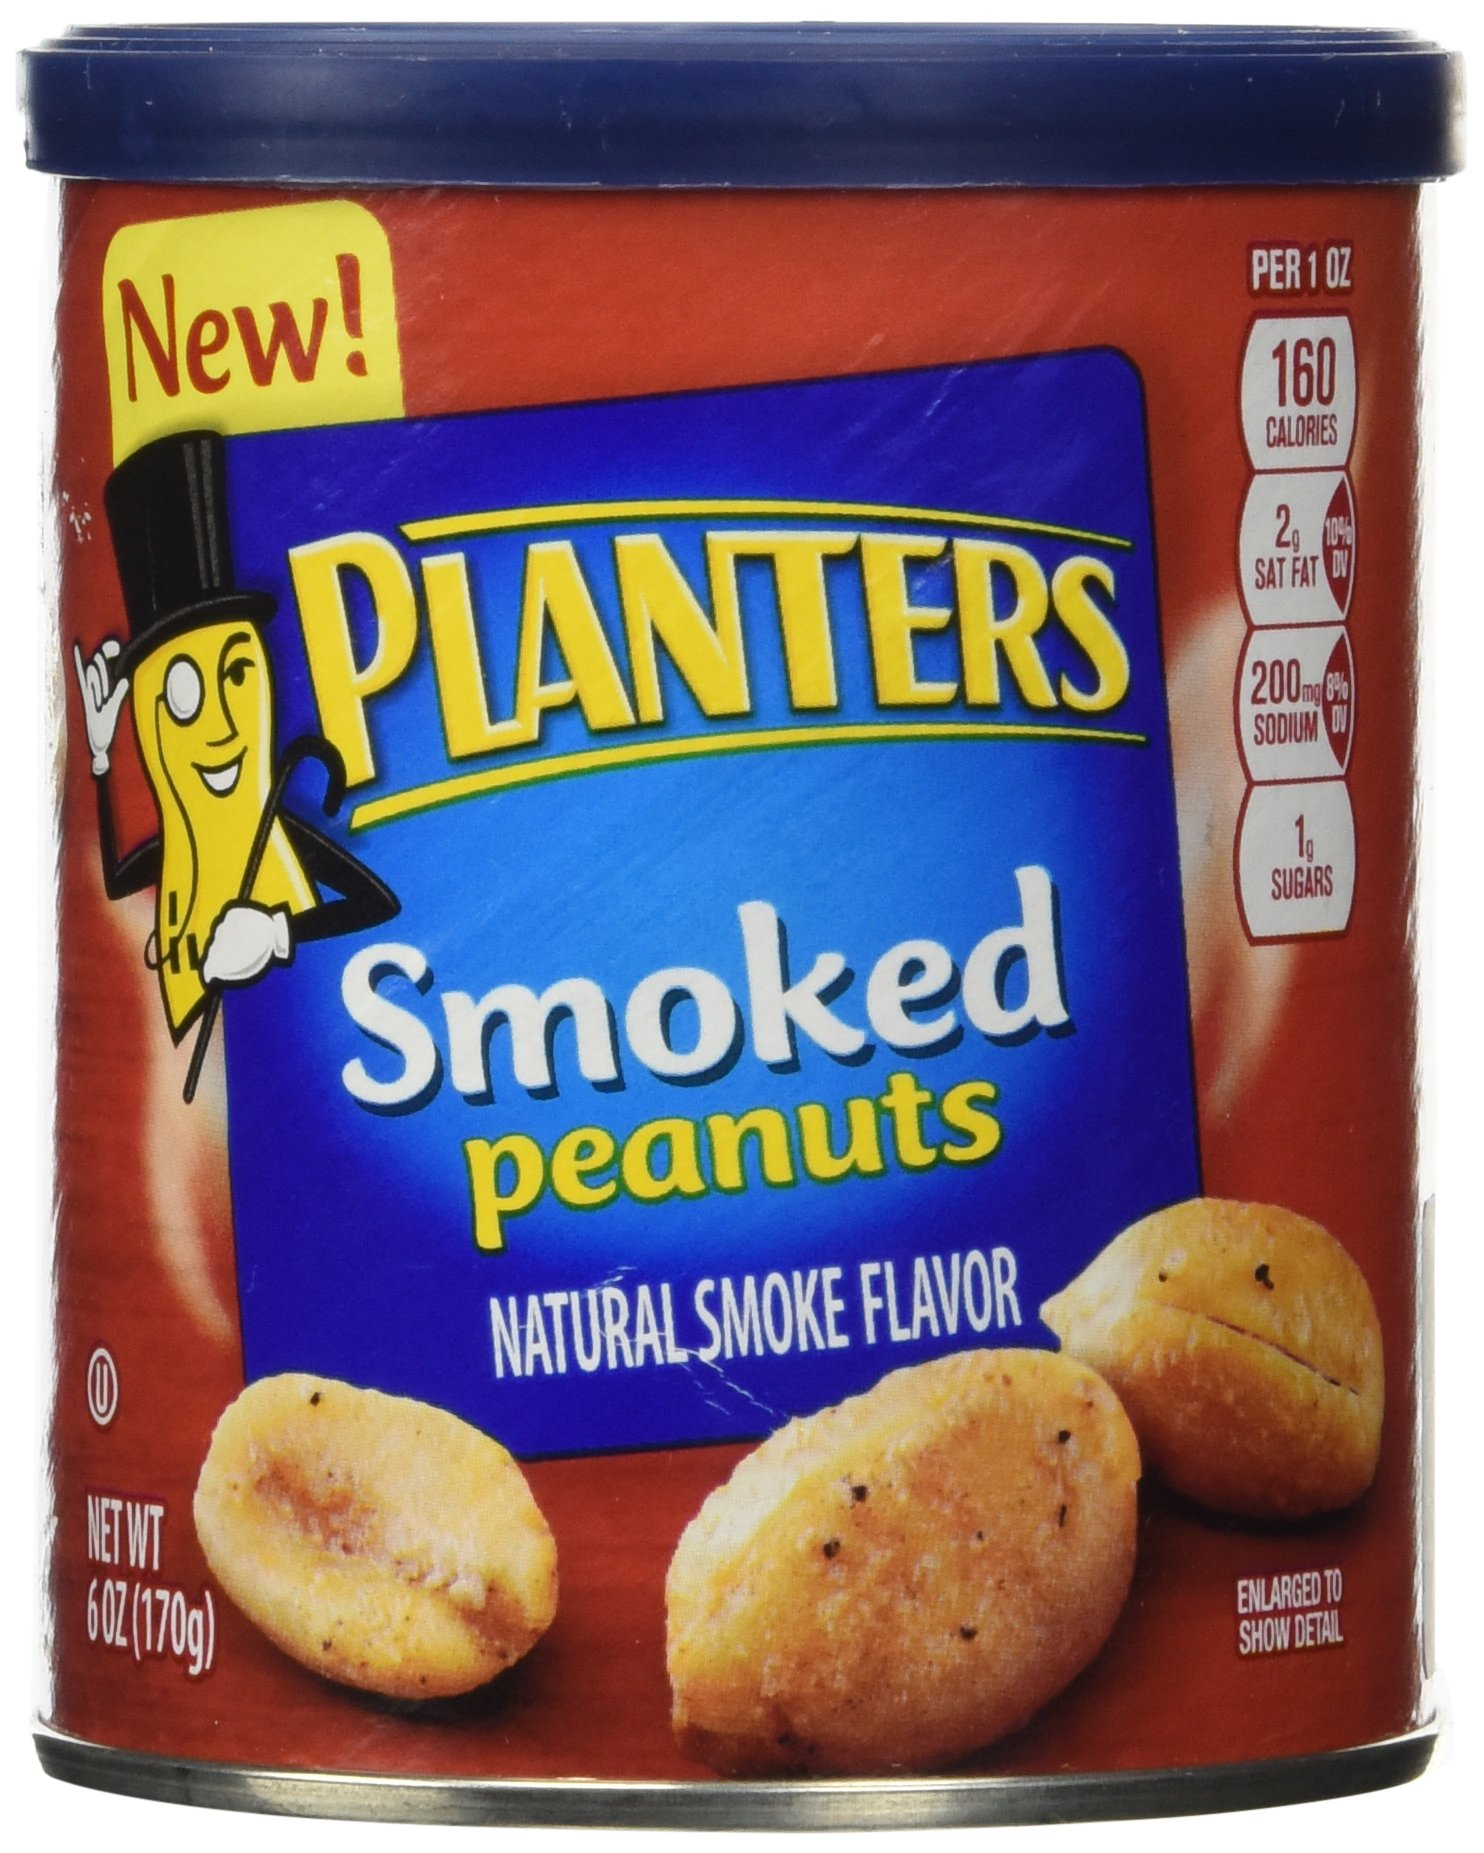 Planters Peanuts Smoked by Planters